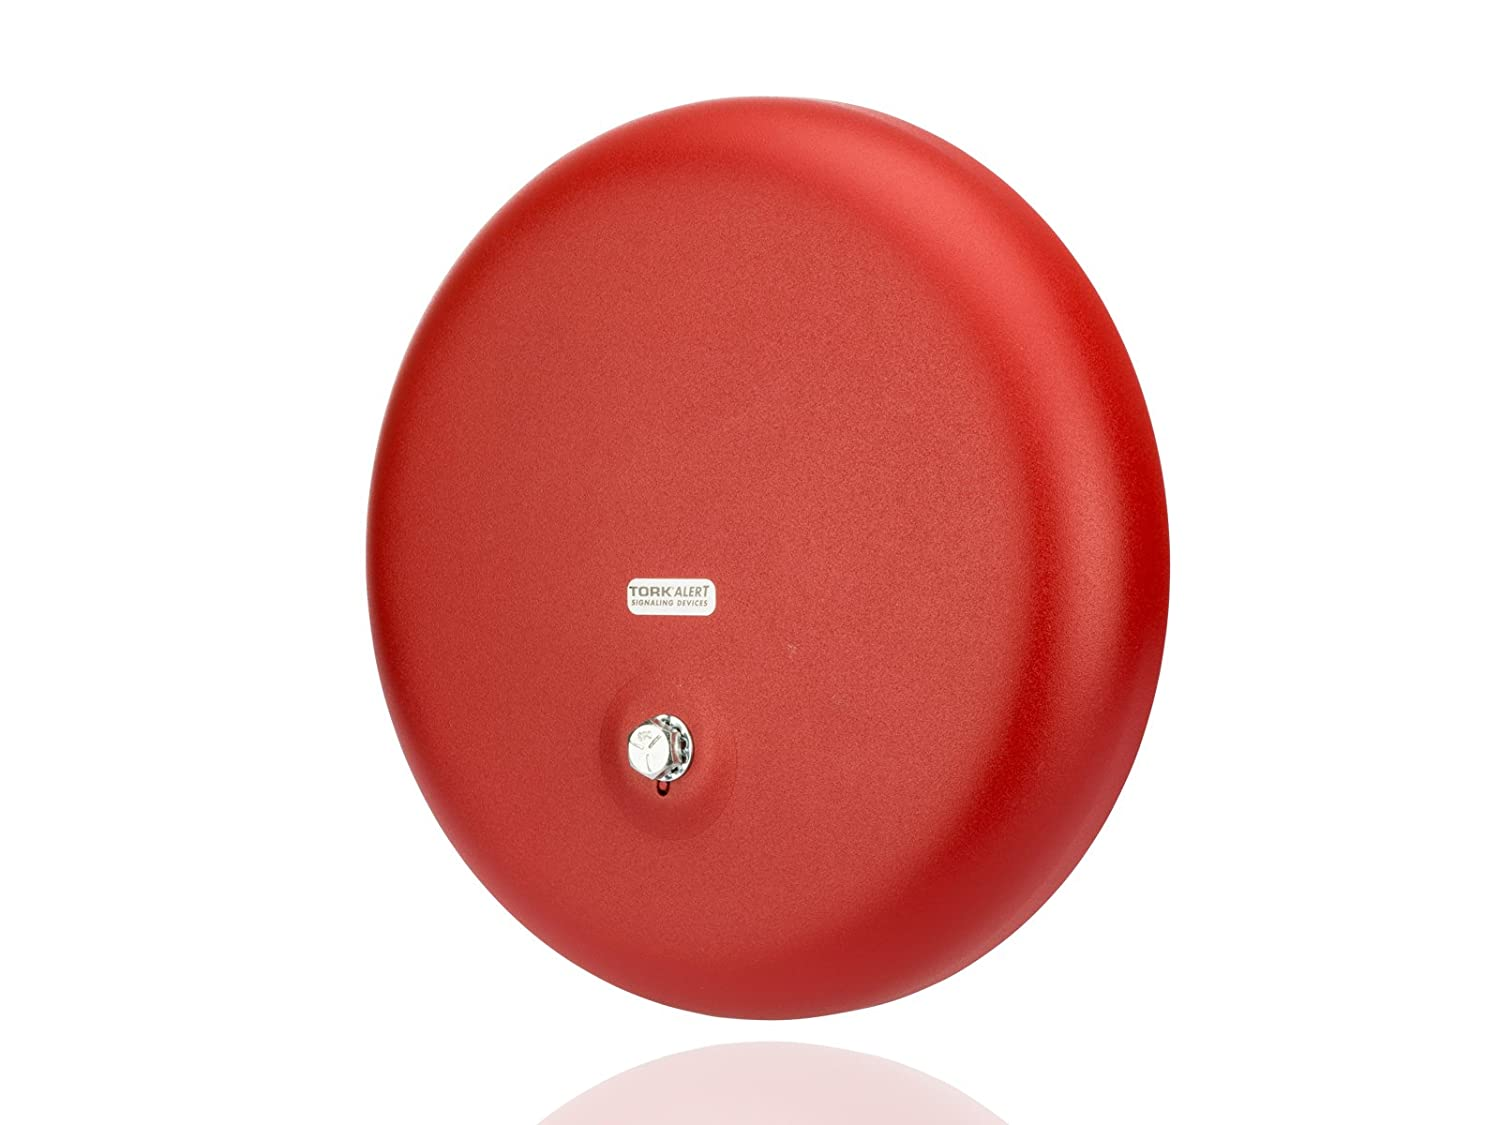 Steel/Aluminum Heavy Duty AC Vibrating Bell, 10 Shell Size, 120 VAC, 0.065 Amp Input Current, Red by